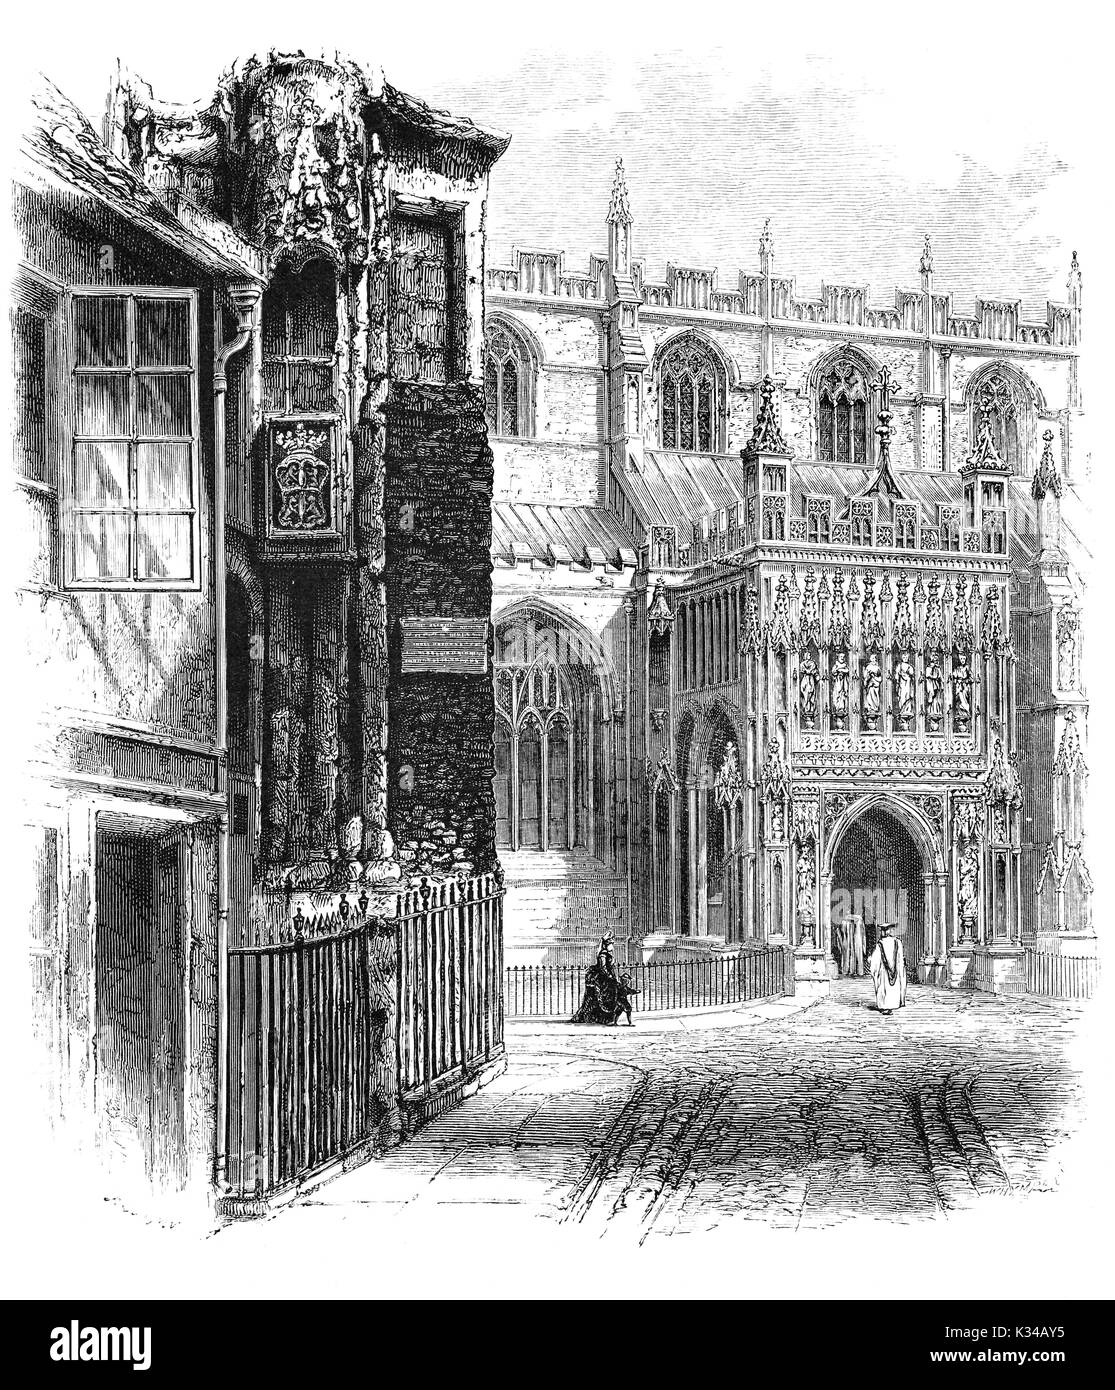 1870: Churchgoers entering the South Porch of Gloucester Cathedral, formally the Cathedral Church of St Peter and the Holy and Indivisible Trinity, in Gloucester, England, stands in the north of the city near the River Severn. It originated in 678 or 679 with the foundation of an abbey dedicated to Saint Peter and later dissolved by King Henry VIII. The Porch is in the Perpendicular style of Decorated Gothic. Gloucestershire, England - Stock Image